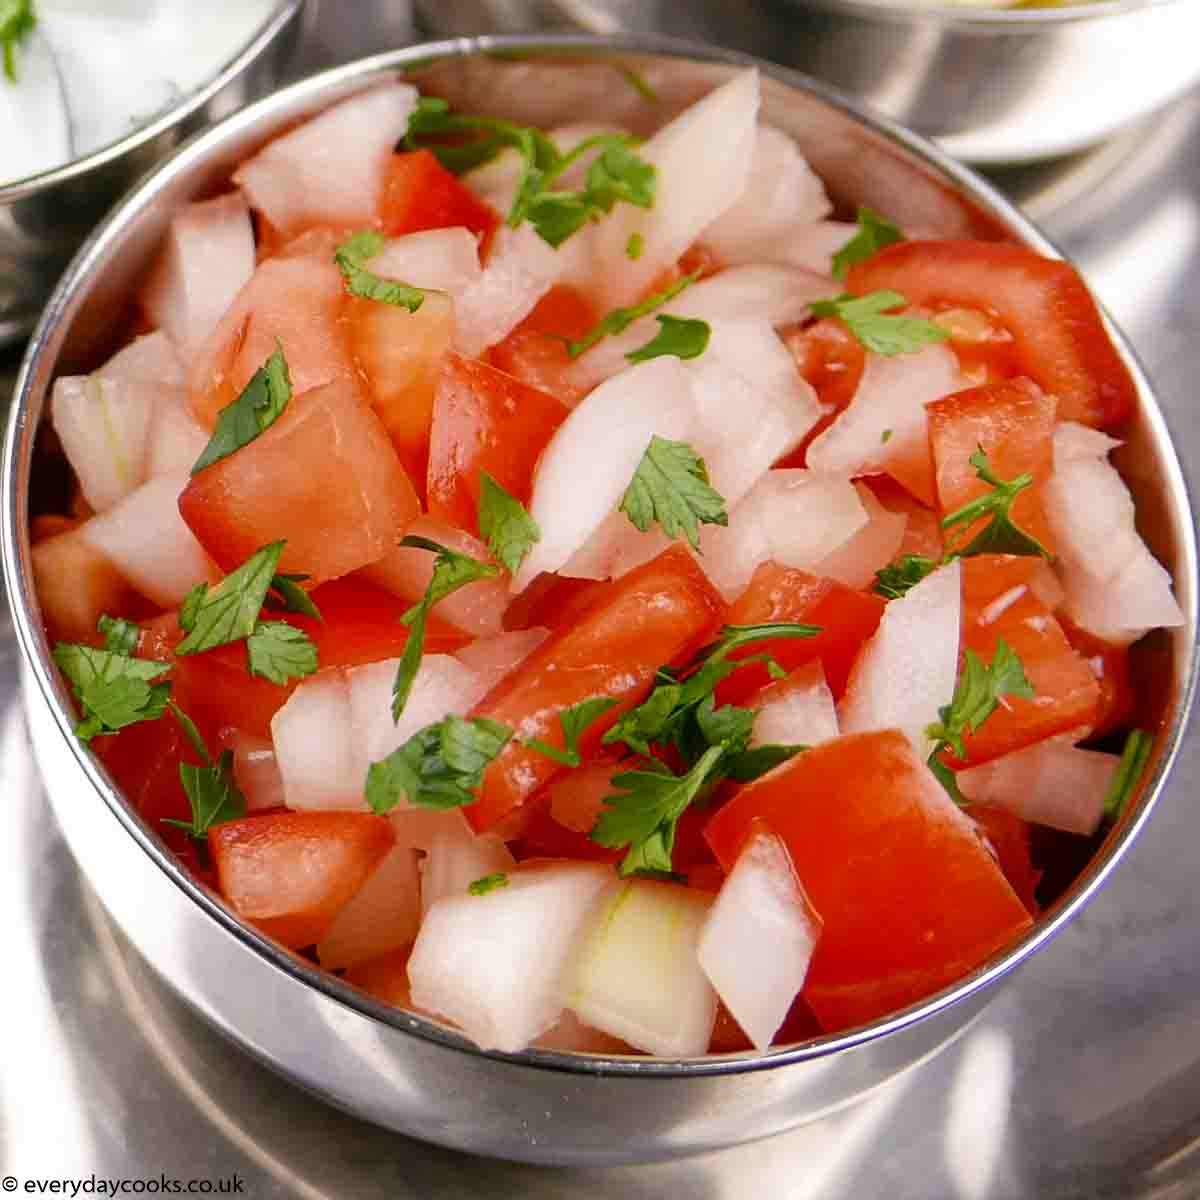 Onion and Tomato Salad in a metal bowl